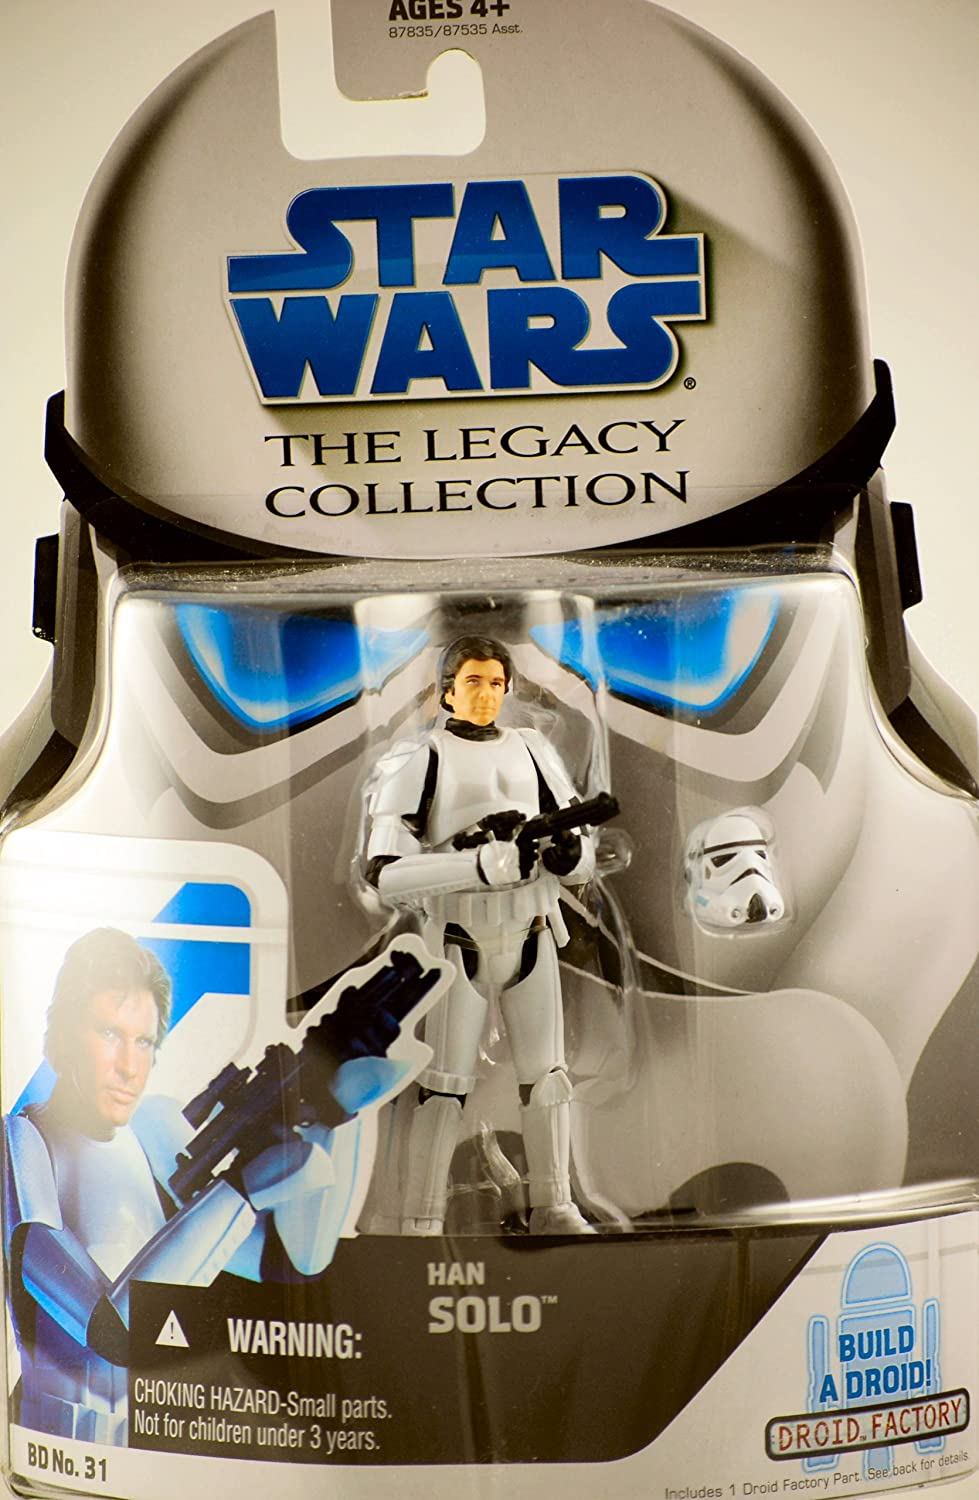 Star Wars Legacy Collection Han Solo Stormtrooper Disguise BD No. 31 R5-A2 Part 3.5